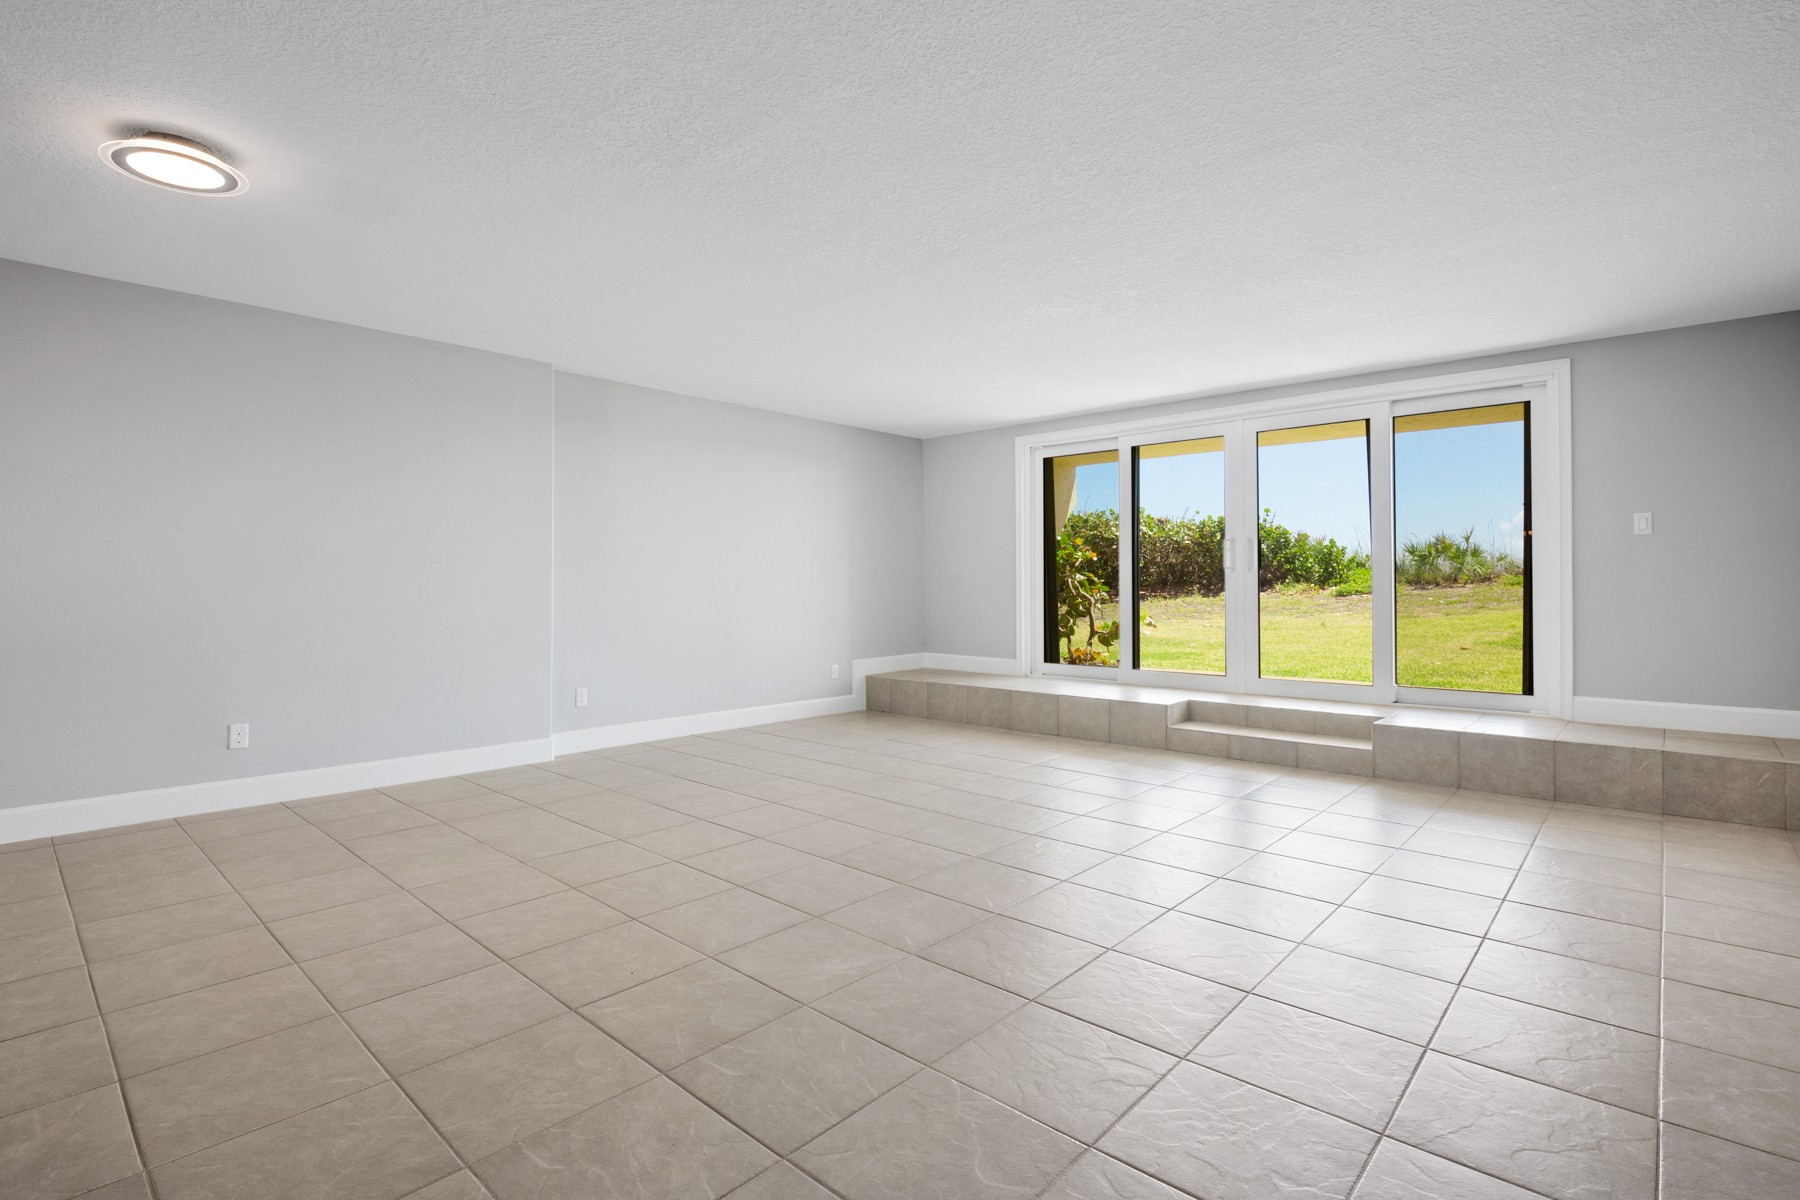 Additional photo for property listing at Pineda Ocean Club 103 Highway A1A Satellite Beach, Florida 32951 United States